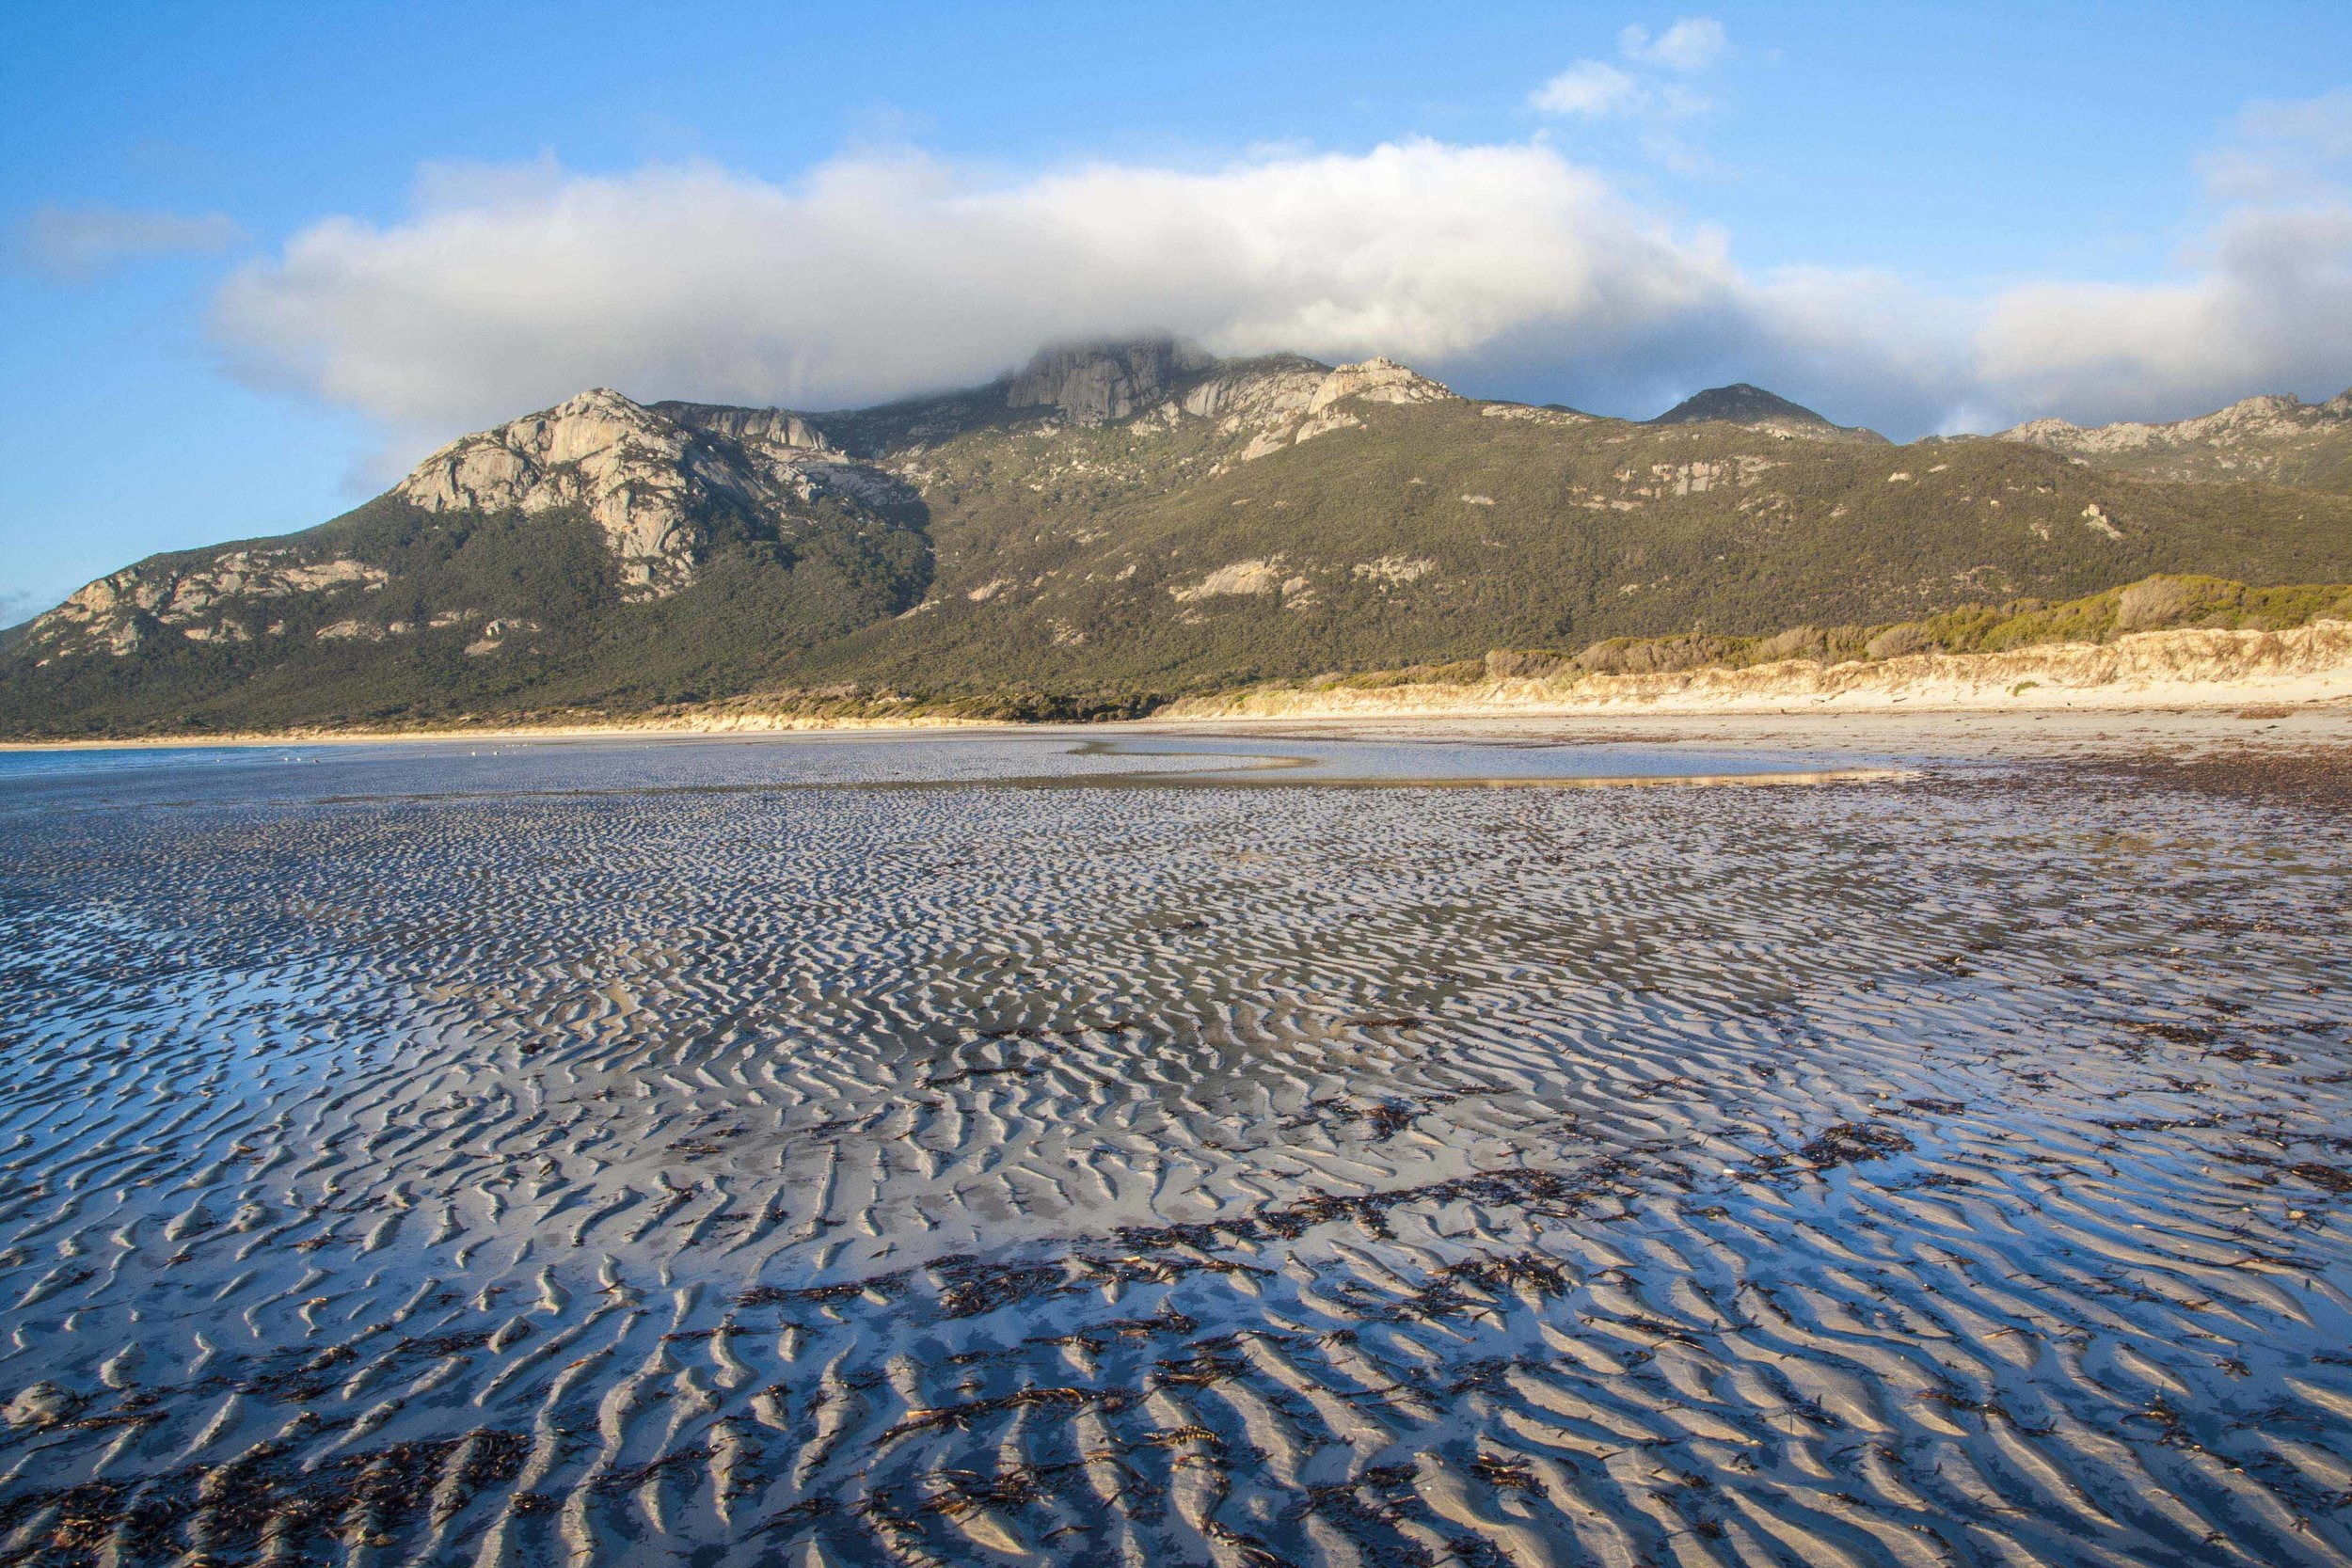 Strzelecki National Park, with Strzelecki Peak shrouded in cloud, viewed from the beach north of Trousers Point at low tide.